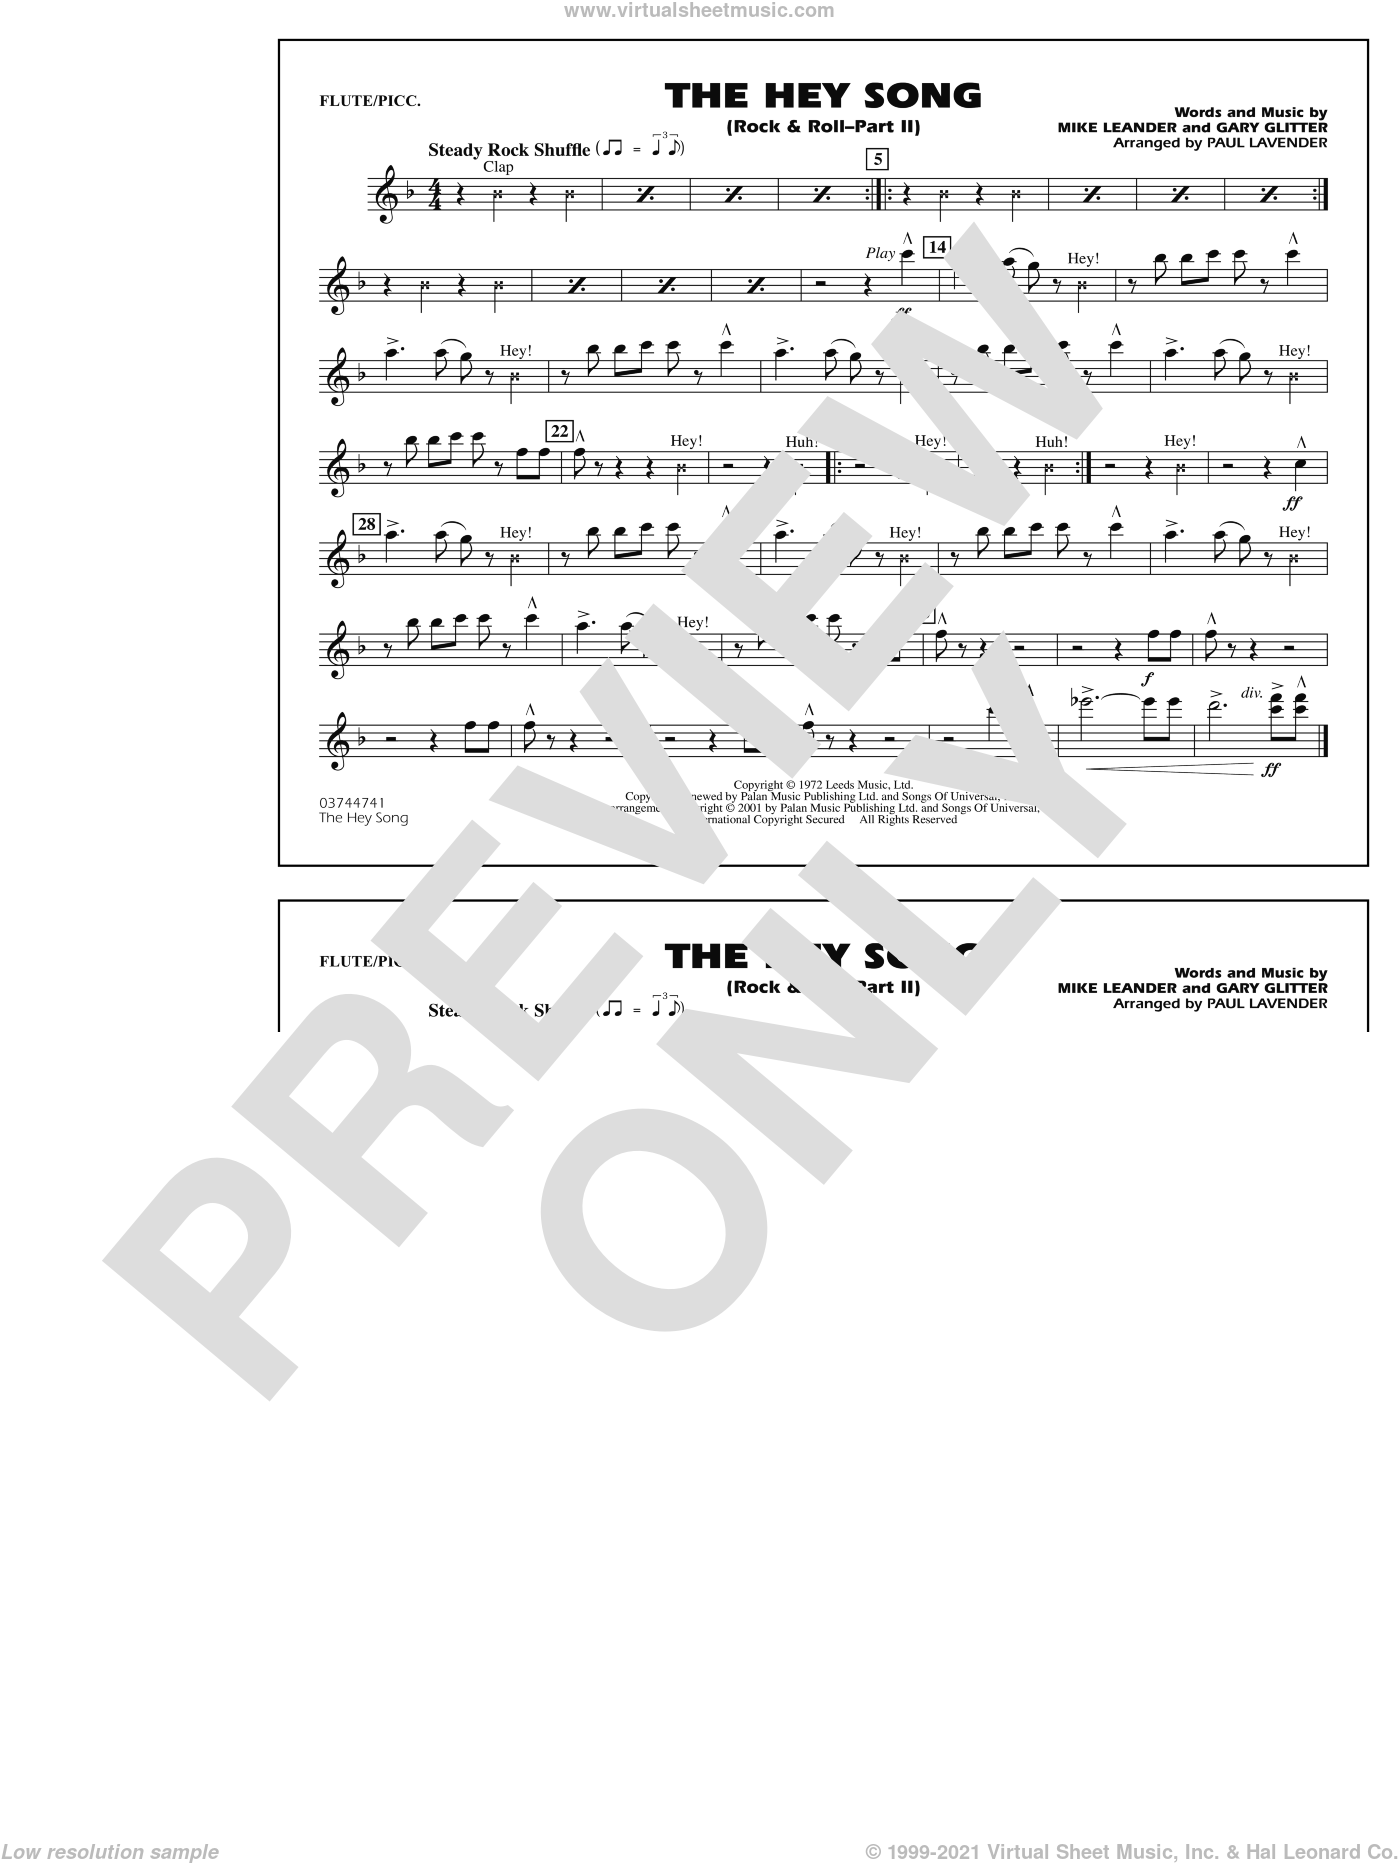 Rock and Roll, part ii (the hey song) sheet music for marching band (flute/piccolo) by Paul Lavender, Mike Leander and Gary Glitter, intermediate skill level